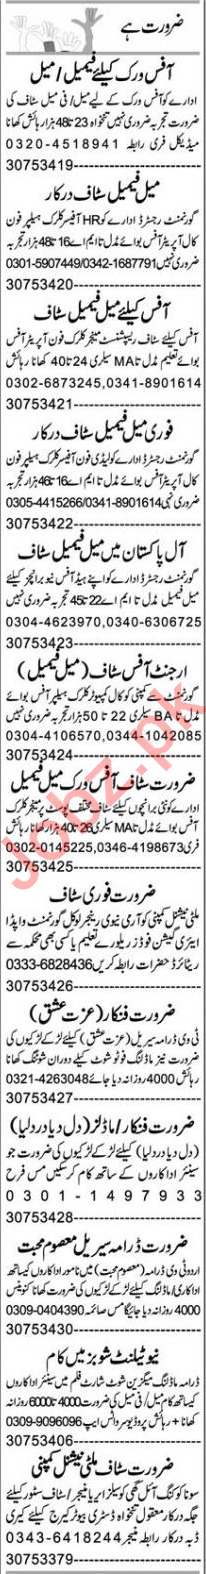 Branch Manager & Assistant Manager Jobs 2020 in Multan